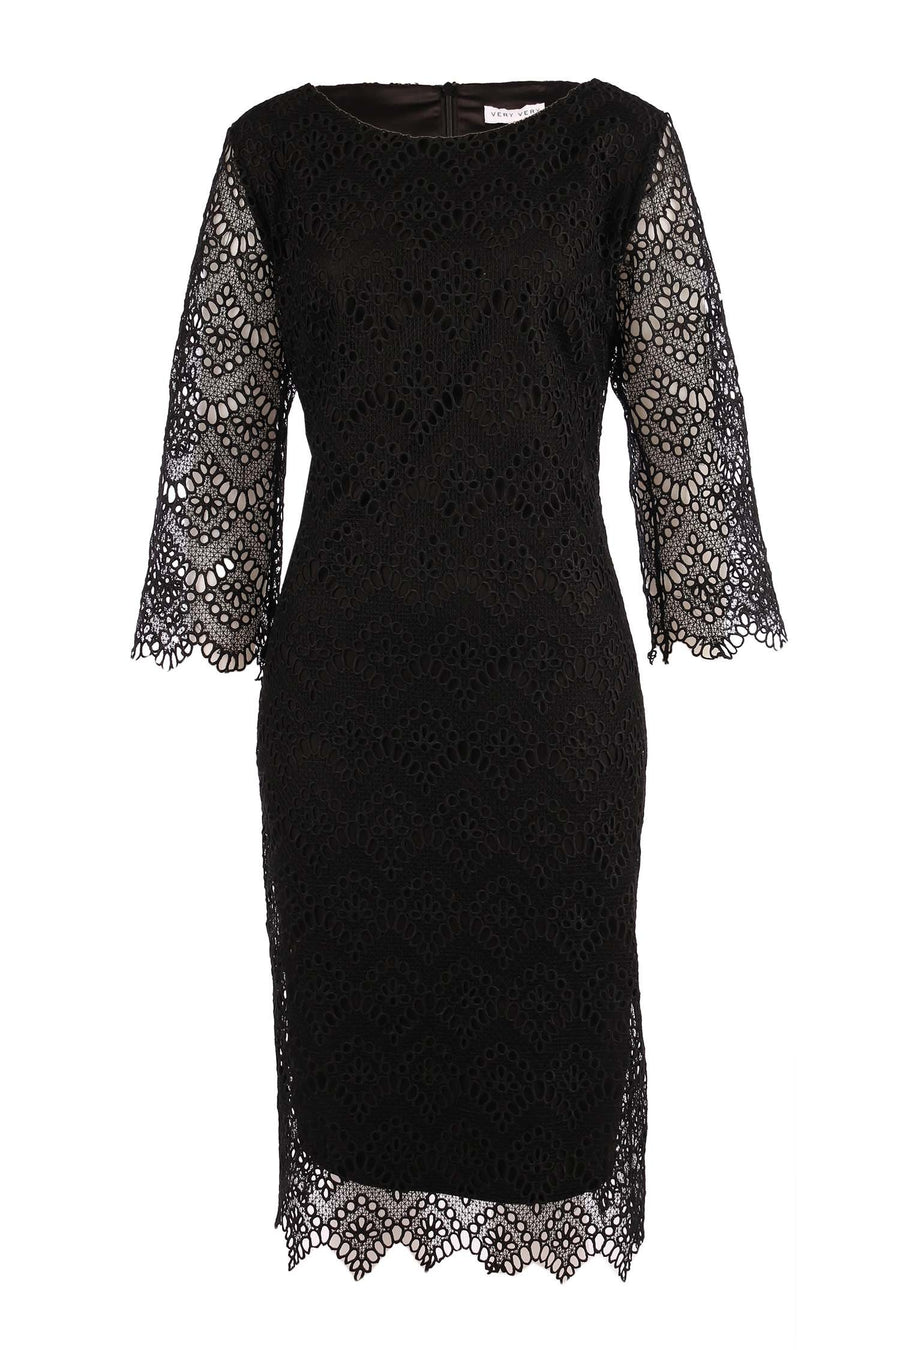 Emma Dress in Antique Black